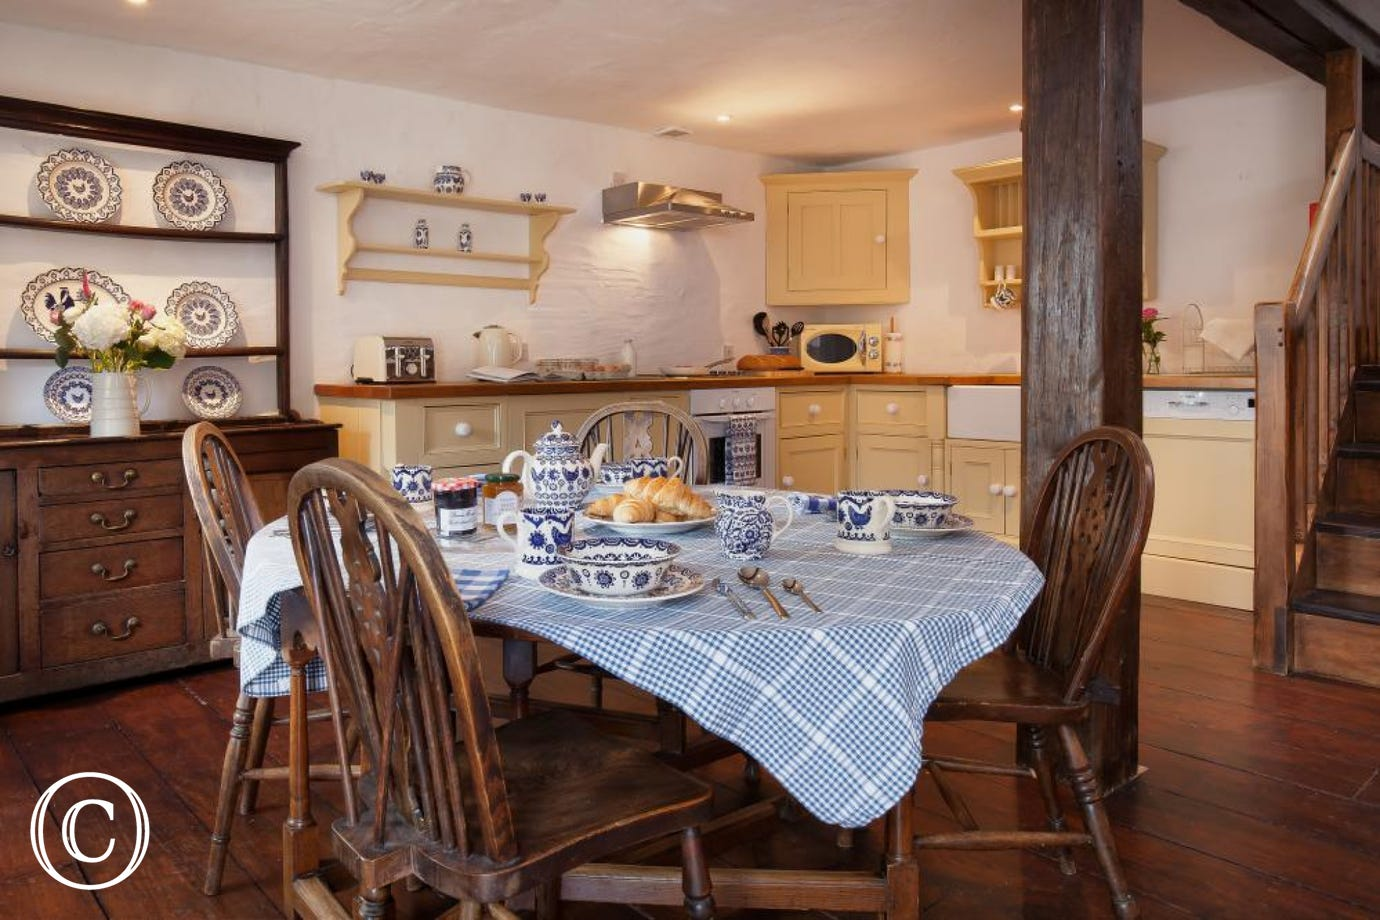 Traditional Country Kitchen with Family Dining Area